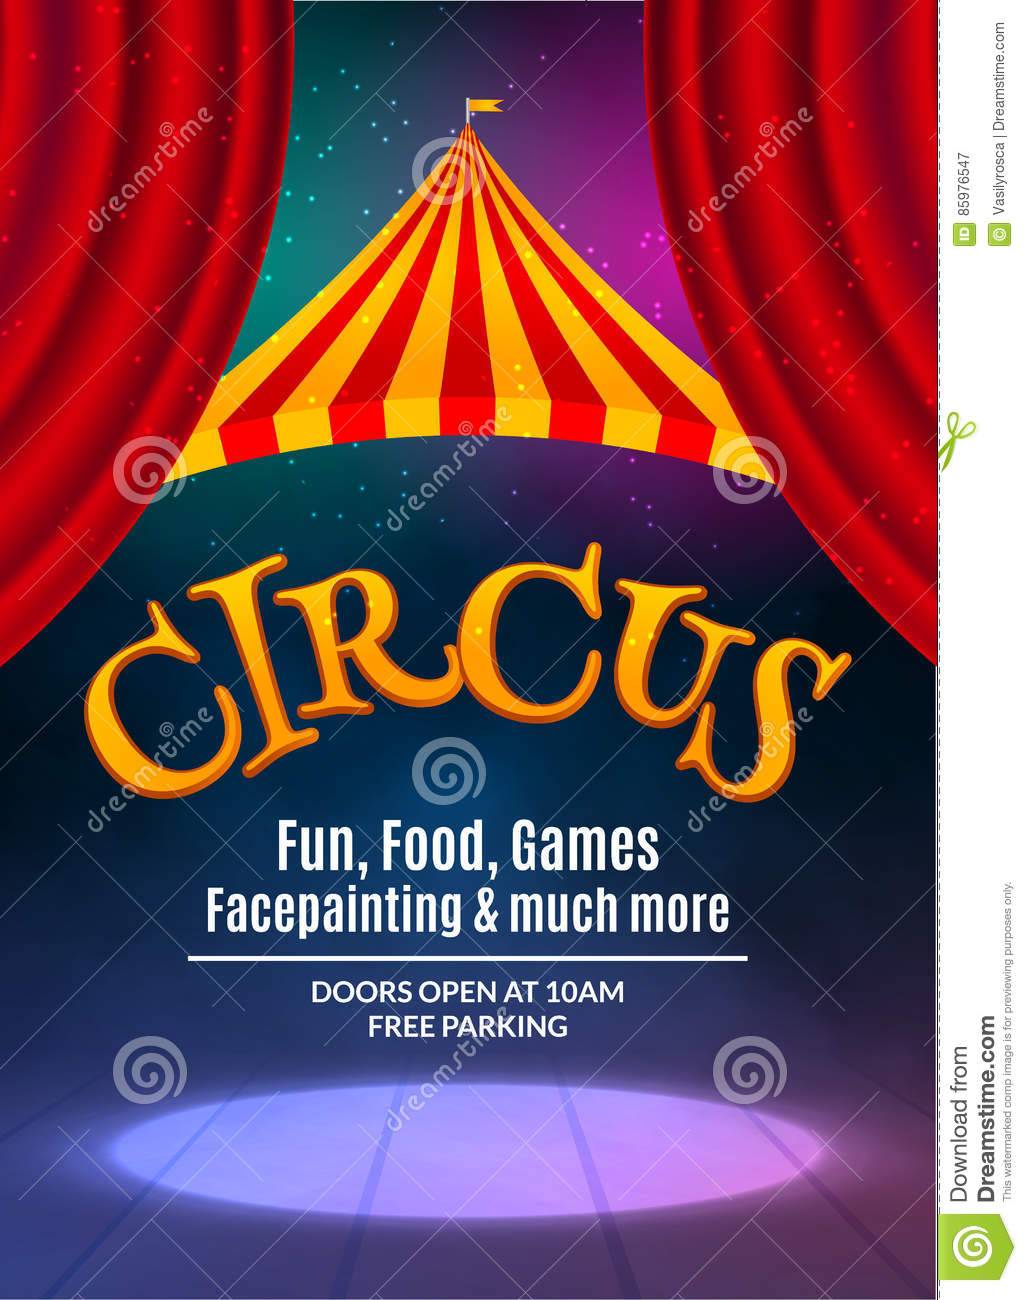 Circus show poster template with sign and light frame. Festive Circus invitation. Vector carnival show illustration